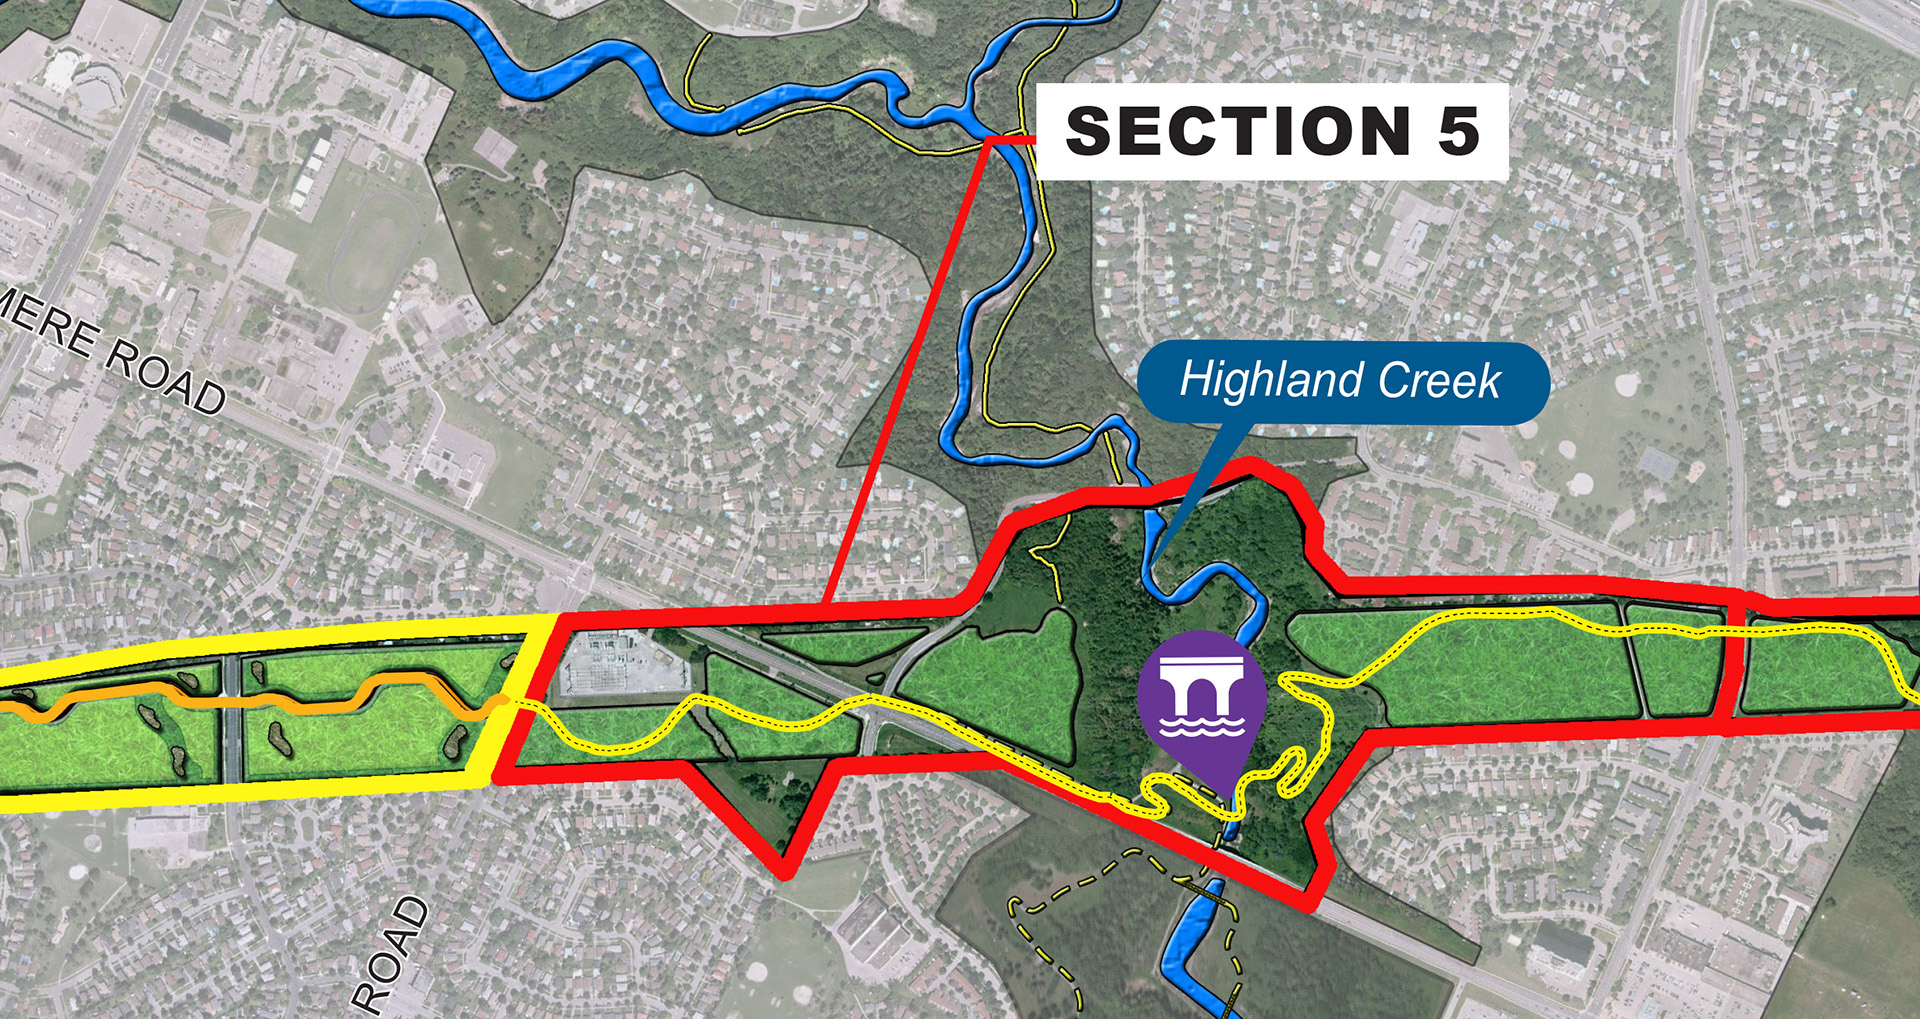 map of The Highland Creek section of The Meadoway multi-use trail